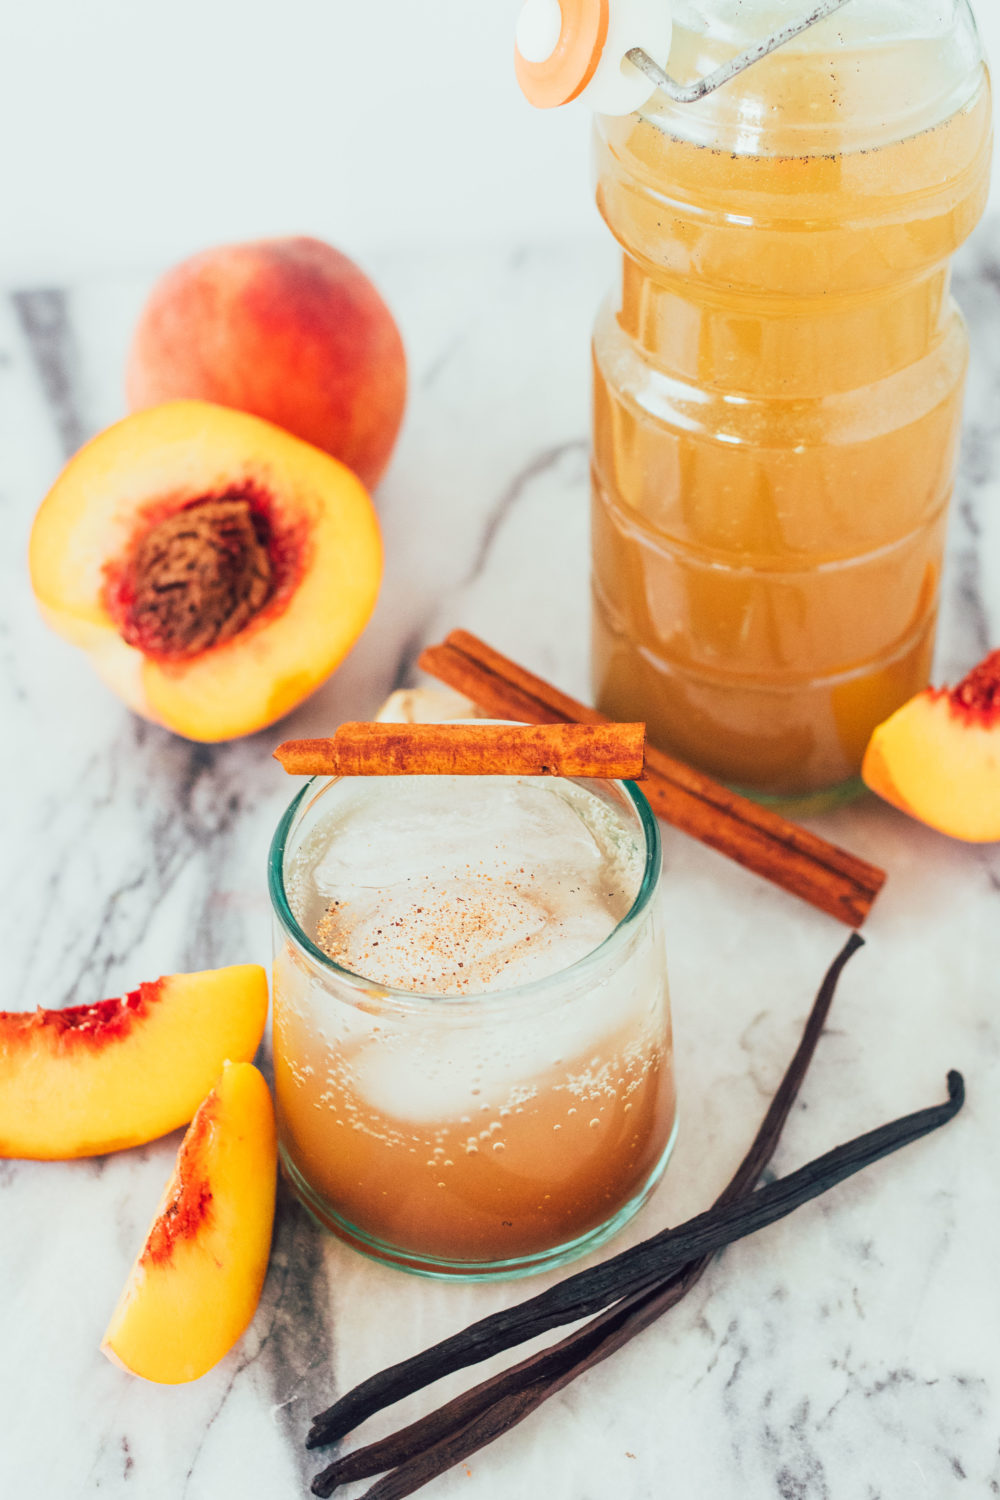 Spiced Peach Drinking Vinegar. An easy, probiotic DIY recipe that's paleo, healthy, gluten-free, dairy-free, whole30